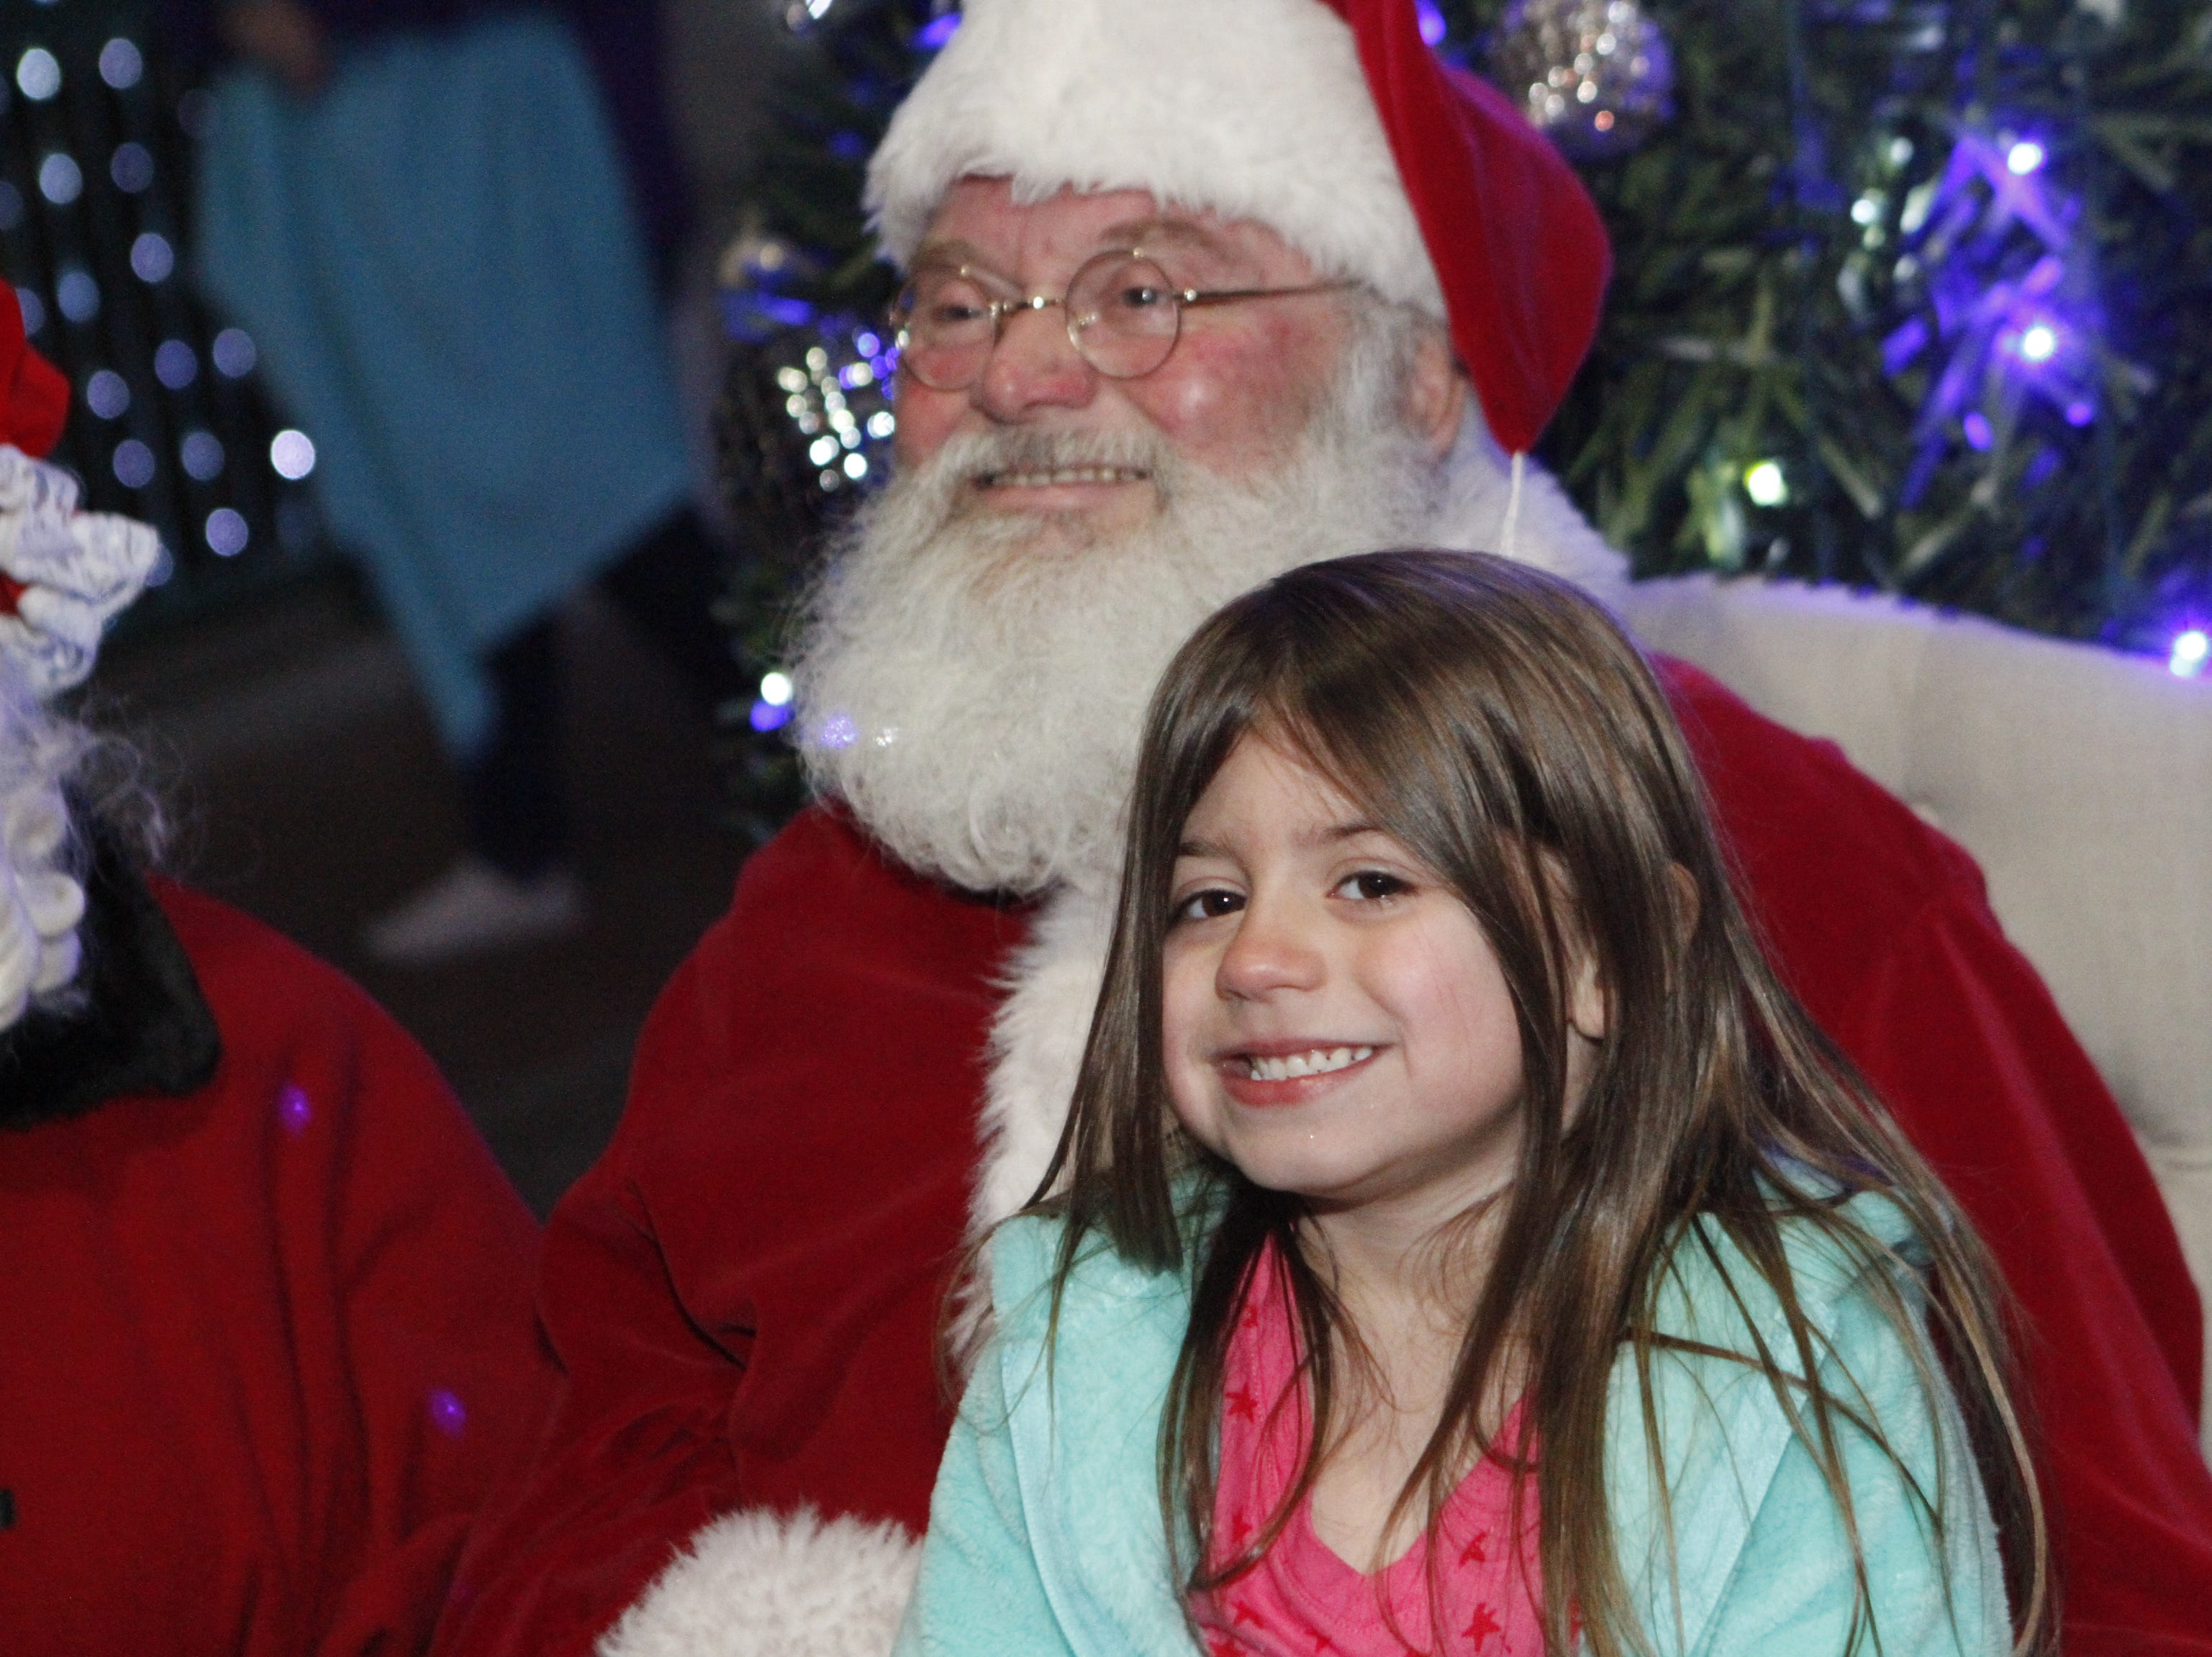 Santa Claus visits with the kids as the City of Clarksville kicked off its annual Christmas on the Cumberland Tuesday, Nov. 20, 2018, with over 2 million lights in the display.